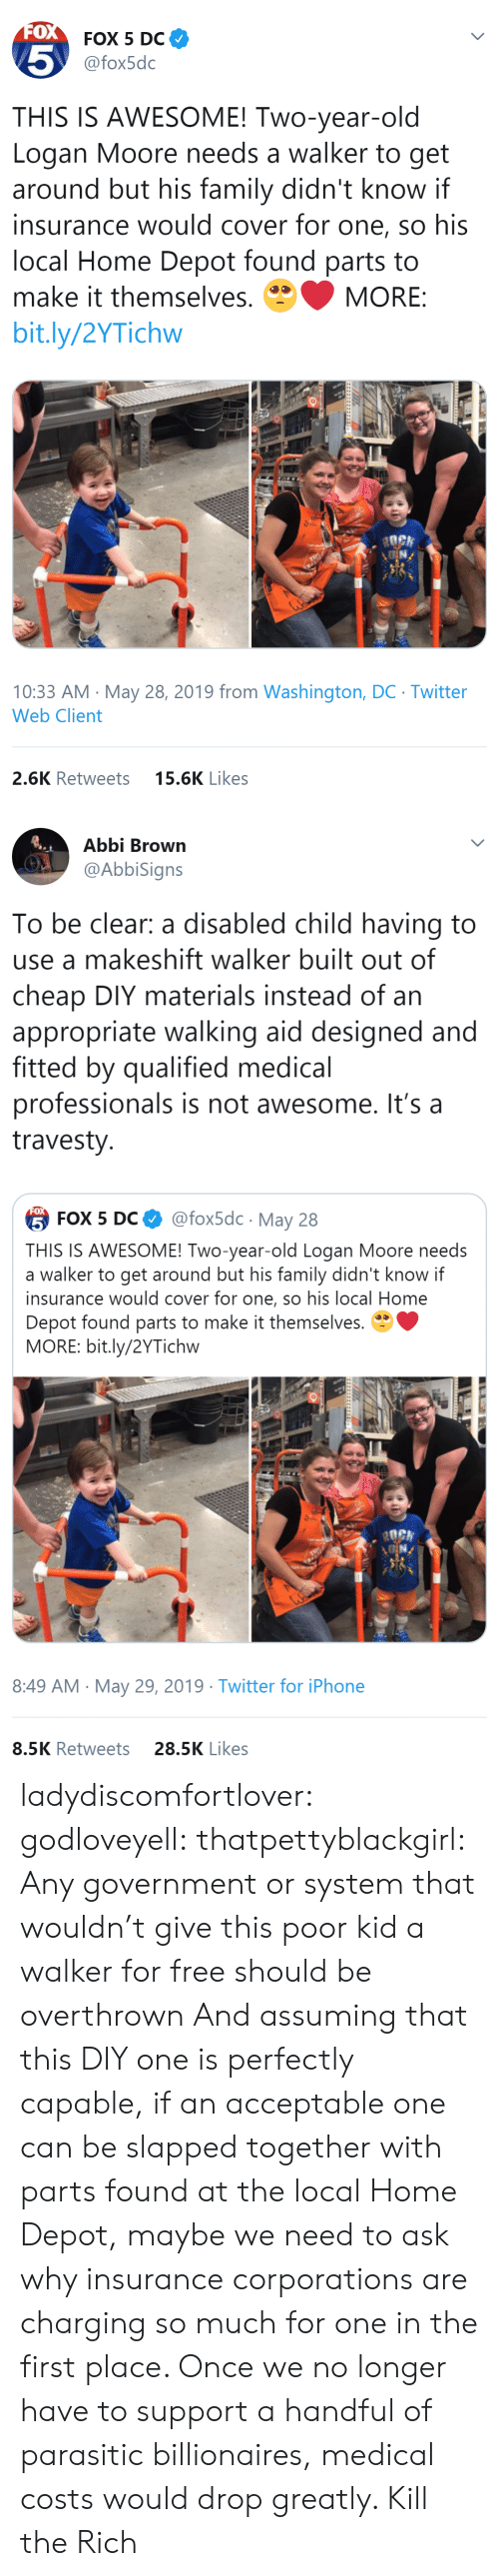 insurance: FOX  FOX 5 DC  5  @fox5dc  THIS IS AWESOME! Two-year-old  Logan Moore needs a walker to get  around but his family didn't know if  insurance would cover for one, so his  local Home Depot found parts to  make it themselves.  MORE:  bit.ly/2YTichw  10:33 AM May 28, 2019 from Washington, DC Twitter  Web Client  15.6K Likes  2.6K Retweets   Abbi Brown  @AbbiSigns  To be clear: a disabled child having to  use a makeshift walker built out of  cheap DIY materials instead of an  appropriate walking aid designed and  fitted by qualified medical  professionals is not awesome. It's a  travesty  FOX  @fox5dc May 28  5 FOX 5 DС  THIS IS AWESOME! Two-year-old Logan Moore needs  a walker to get around but his family didn't know if  insurance would cover for one, so his local Home  Depot found parts to make it themselves.  MORE: bit.ly/2YTichw  8:49 AM May 29, 2019 Twitter for iPhone  28.5K Likes  8.5K Retweets ladydiscomfortlover: godloveyell:  thatpettyblackgirl:  Any government or system that wouldn't give this poor kid a walker for free should be overthrown   And assuming that this DIY one is perfectly capable, if an acceptable one can be slapped together with parts found at the local Home Depot, maybe we need to ask why insurance corporations are charging so much for one in the first place.  Once we no longer have to support a handful of parasitic billionaires, medical costs would drop greatly.    Kill the Rich